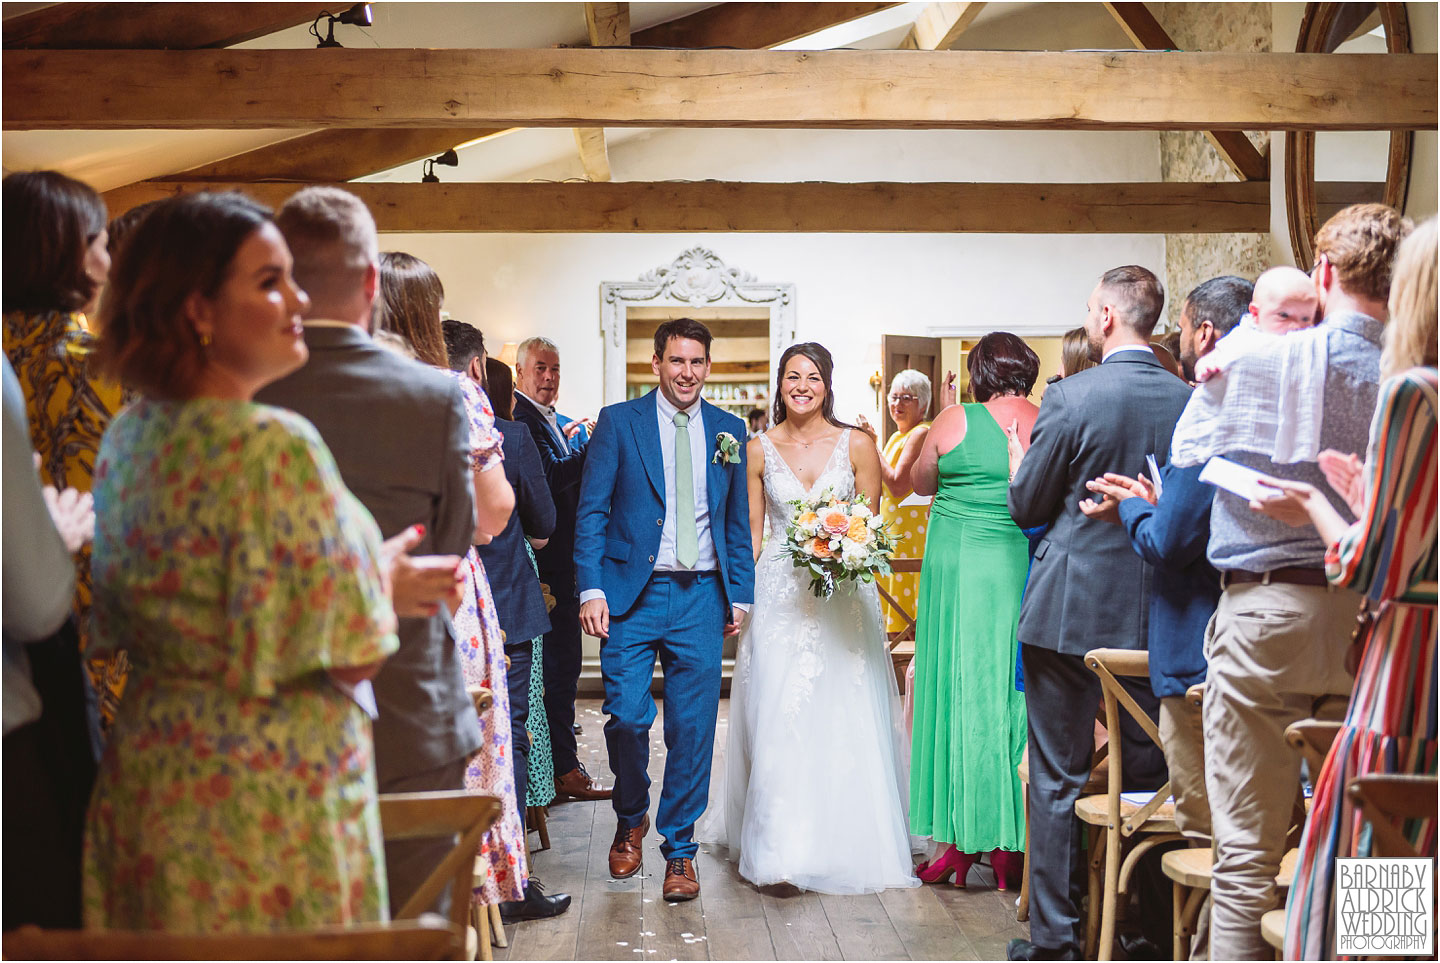 Down the aisle at the Fig House Walled Garden at Middleton Lodge, Fig House Walled Garden Middleton Lodge Wedding Photos, Fig House Middleton Lodge Richmond, Middleton Lodge wedding photographer, Middleton Lodge Wedding Photography, Yorkshire Wedding Photographer Barnaby Aldrick